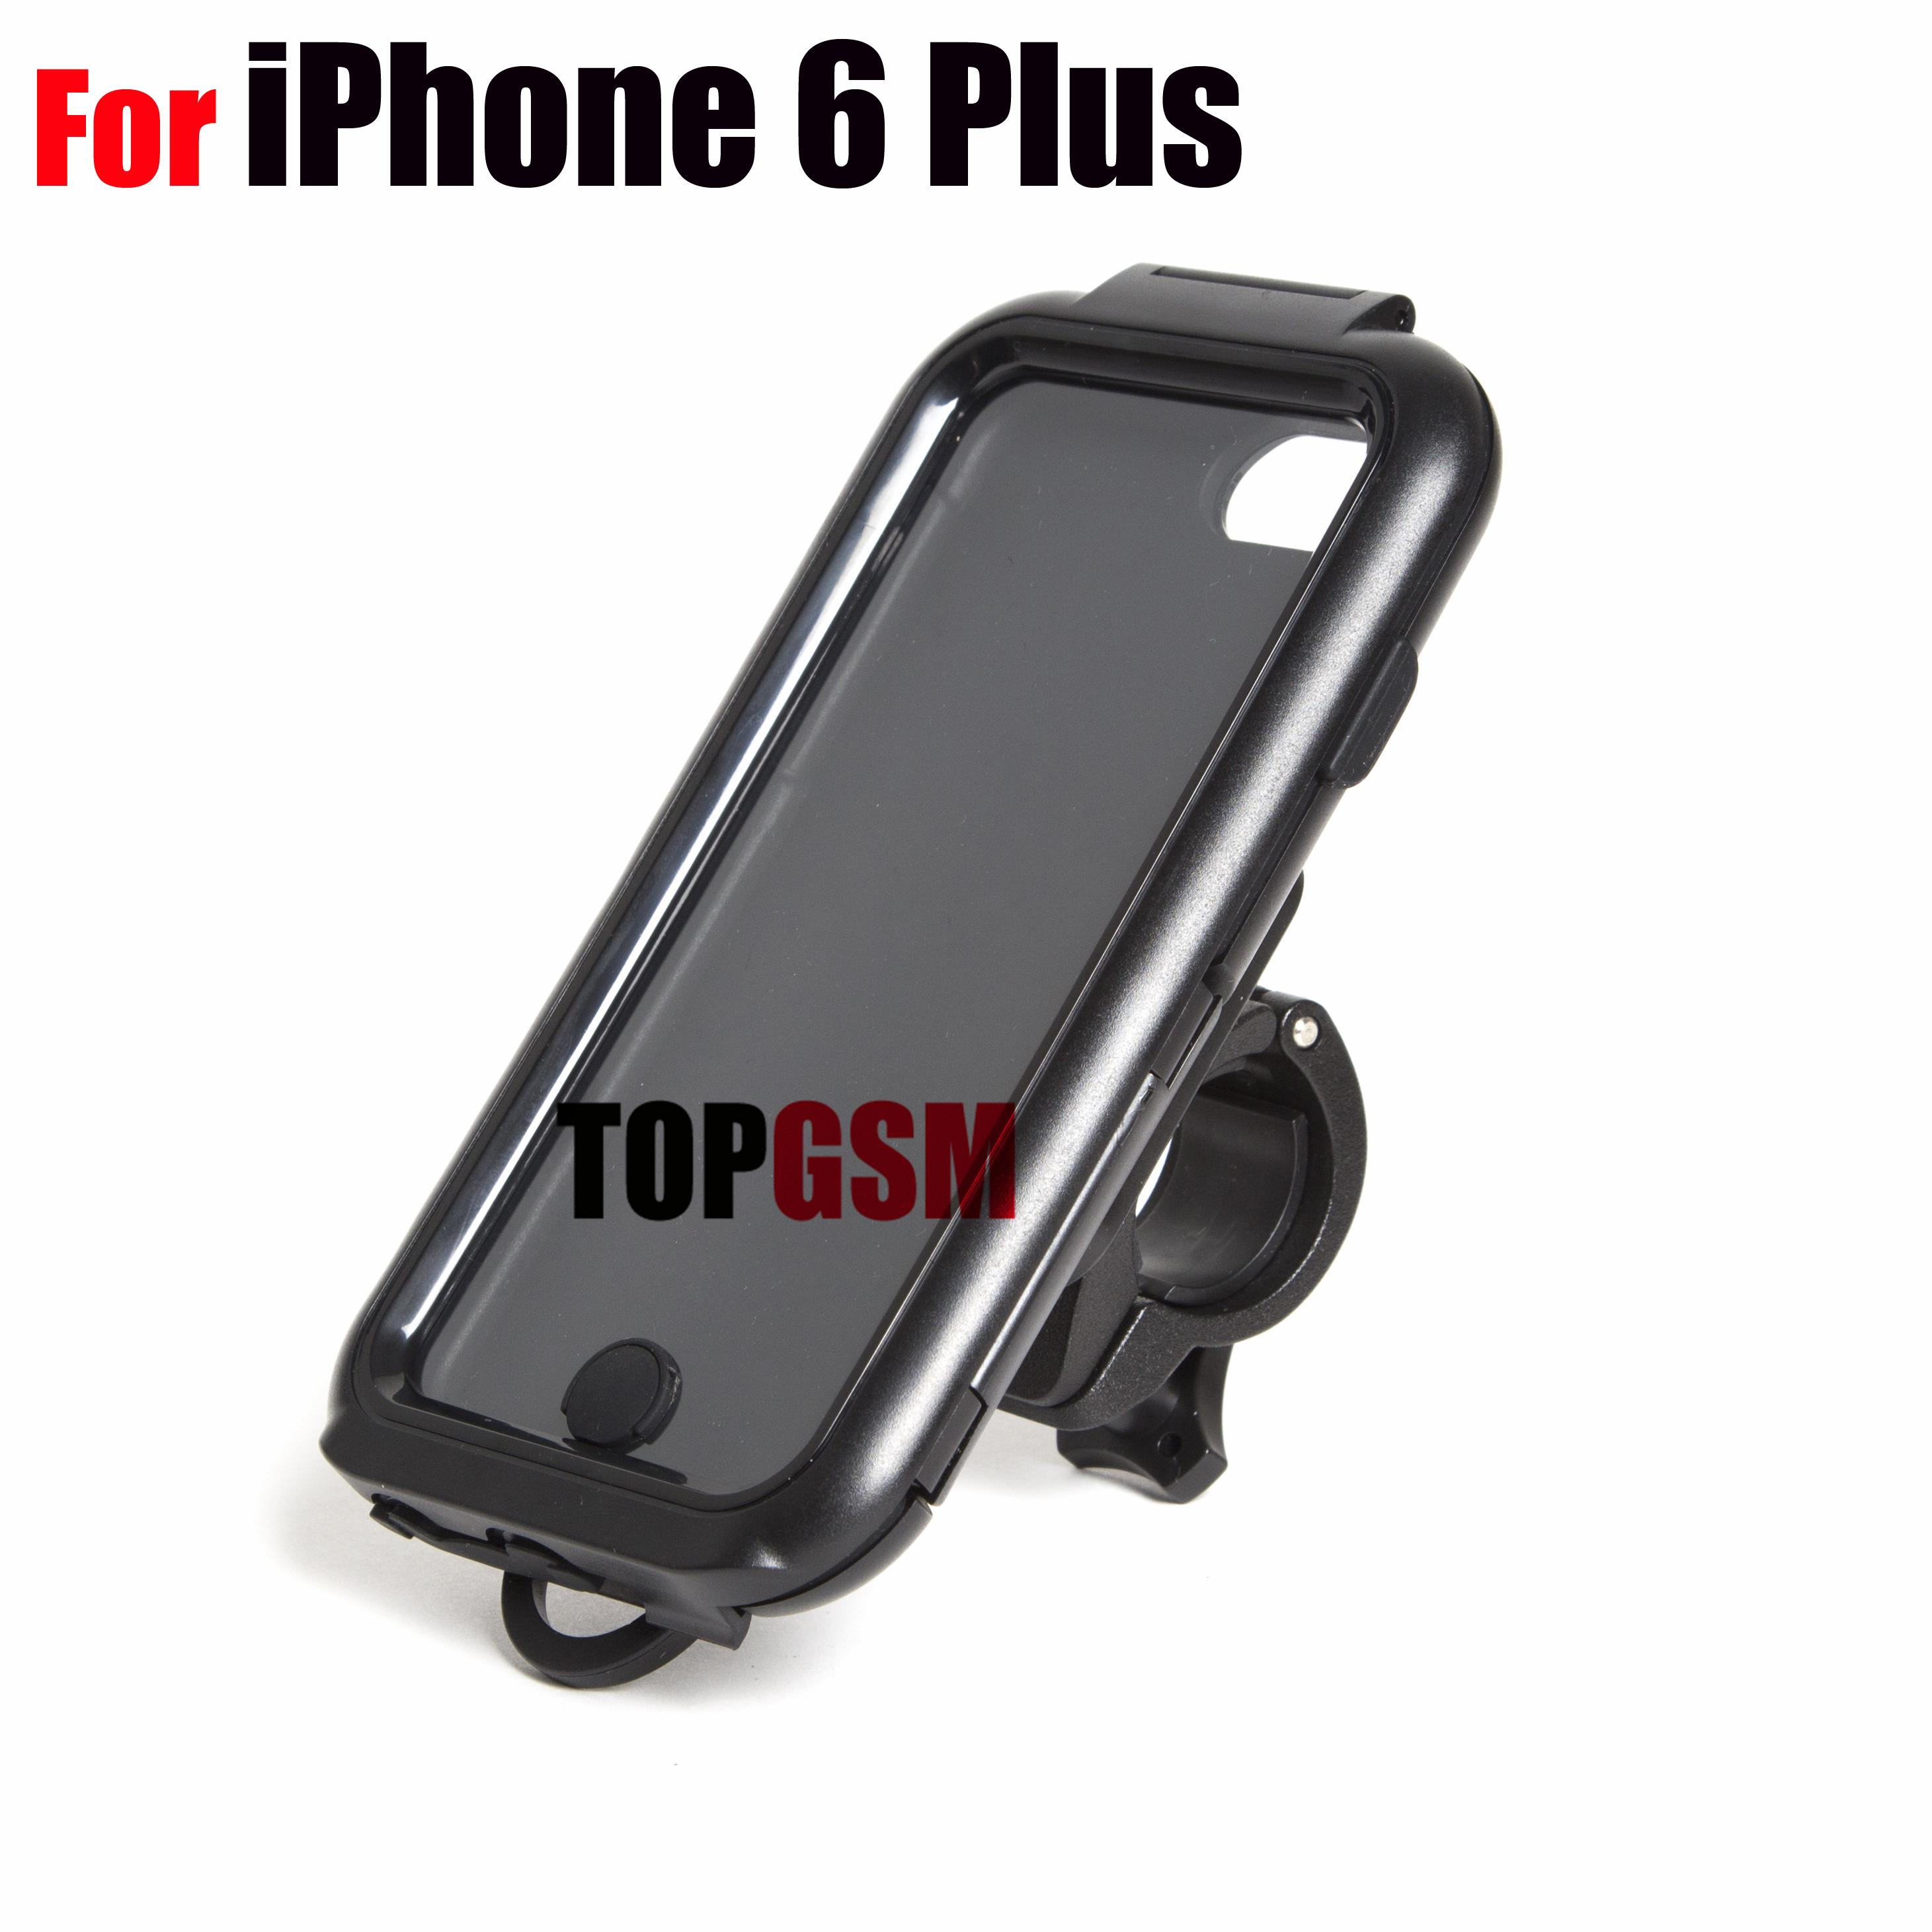 iphone 6 plus motorcycle mount 2017 iphone 6 plus outdoor with bike mount 3320